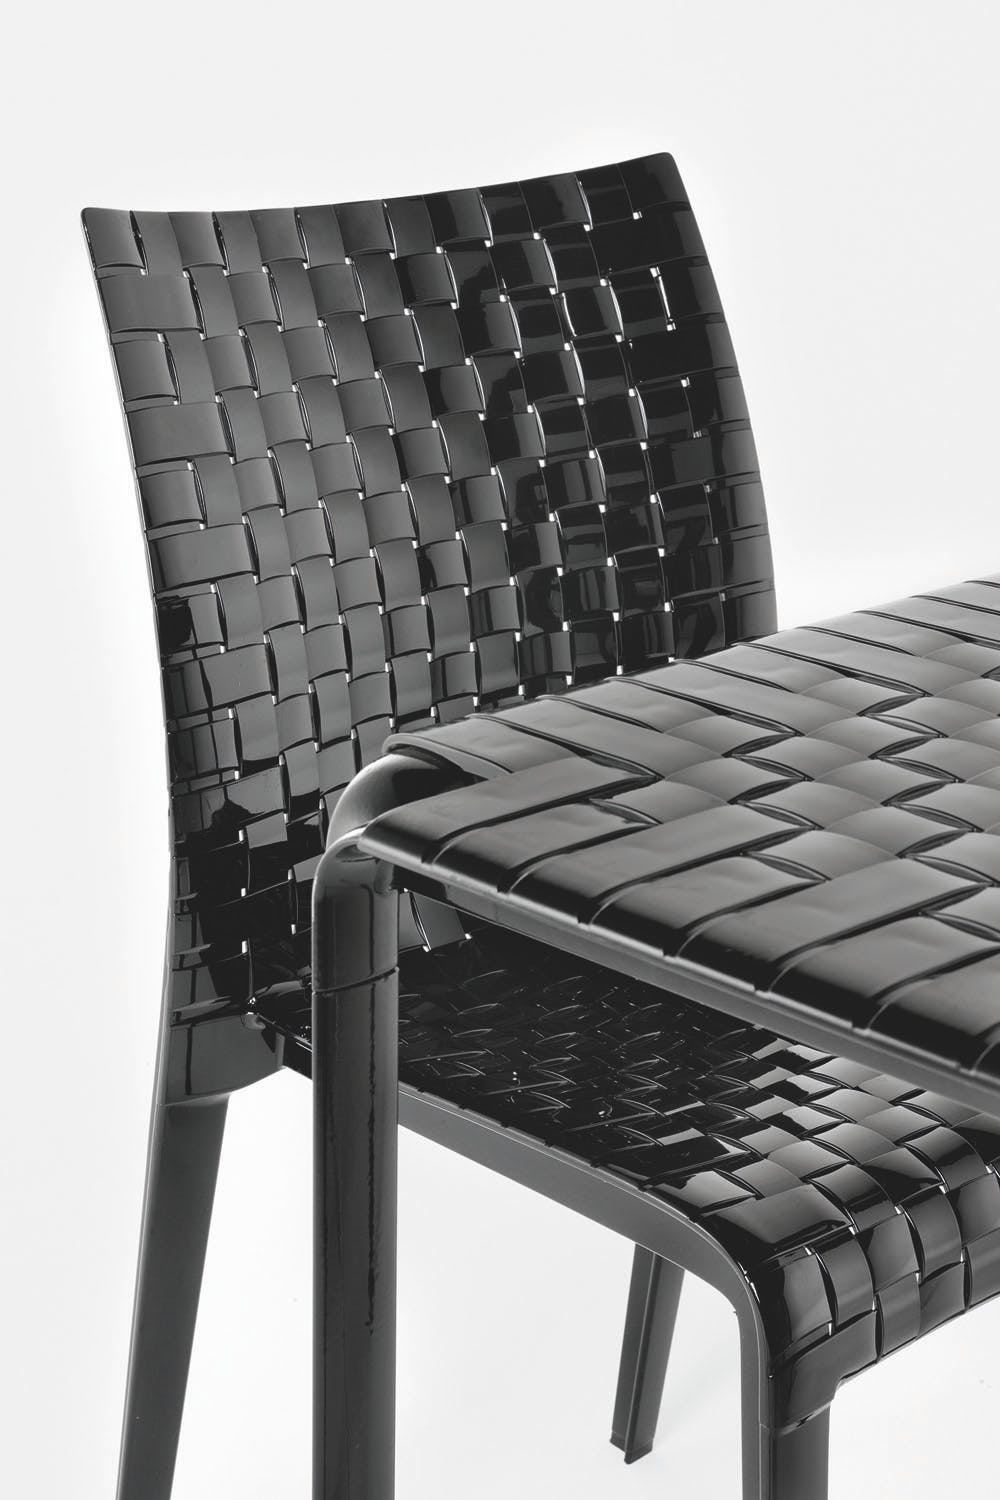 ami ami chair by tokujin yoshioka for kartell  space furniture - share